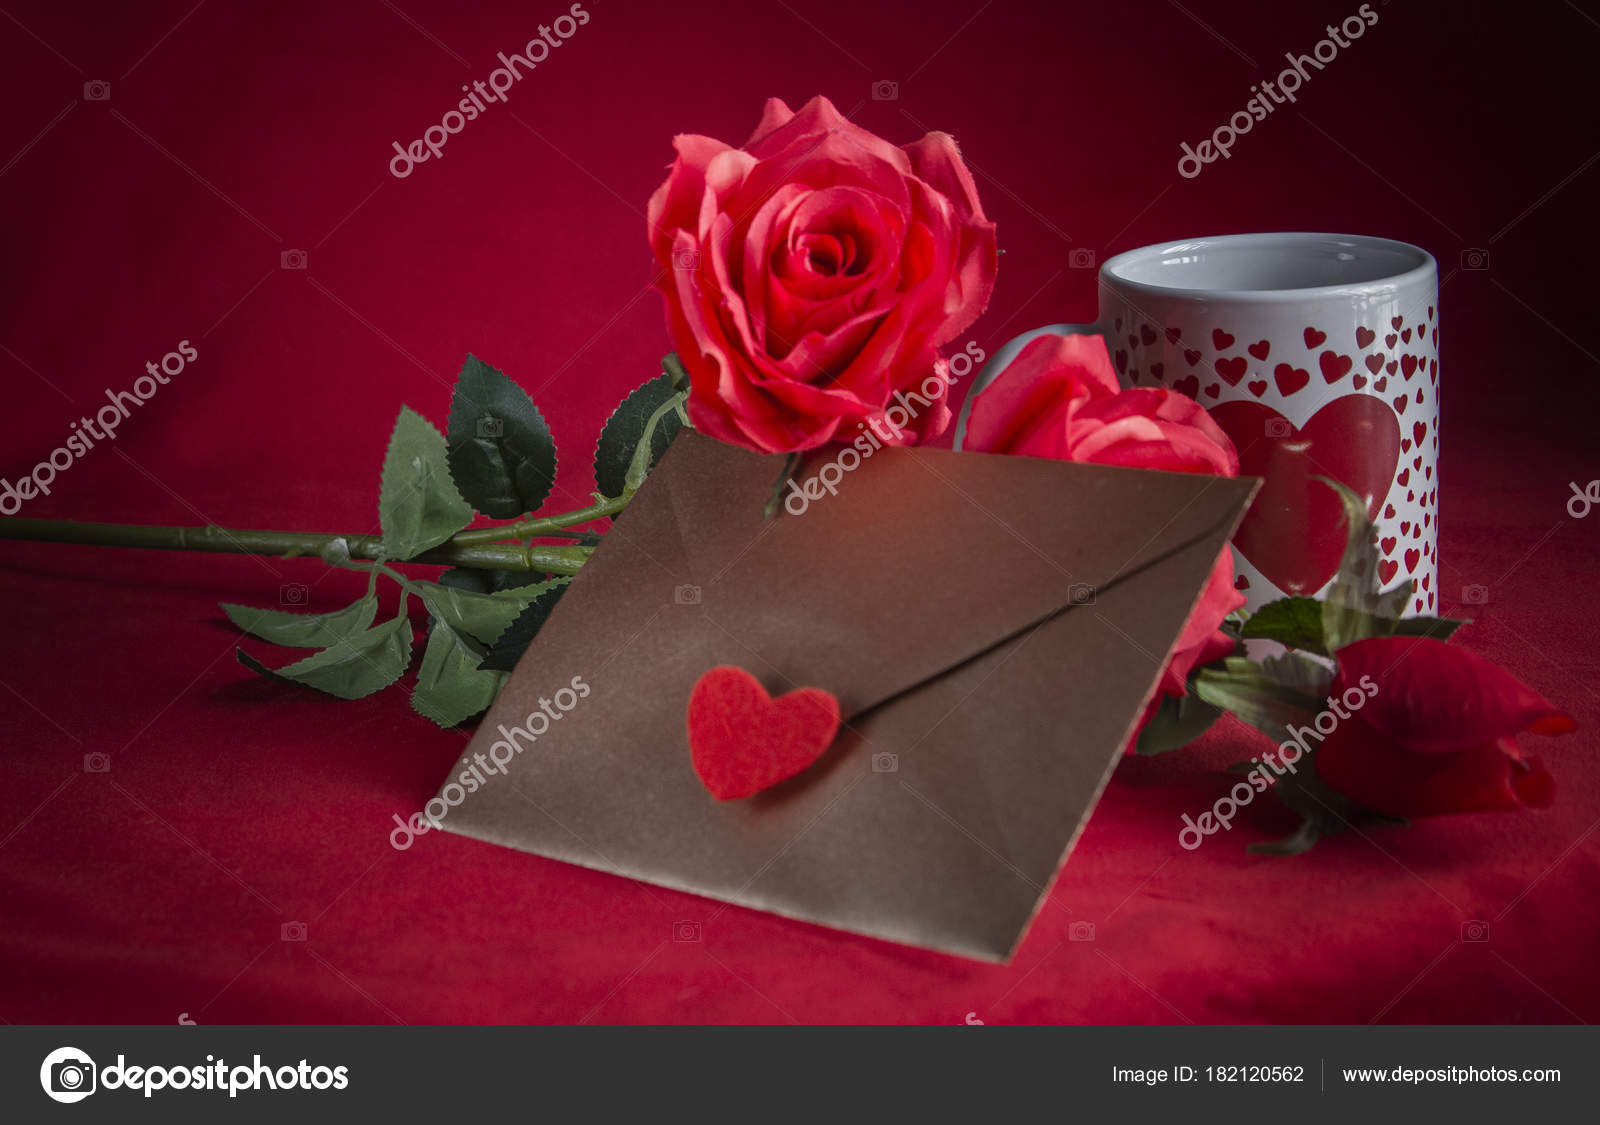 valentine concept love letter rose and a heart cup on a red background